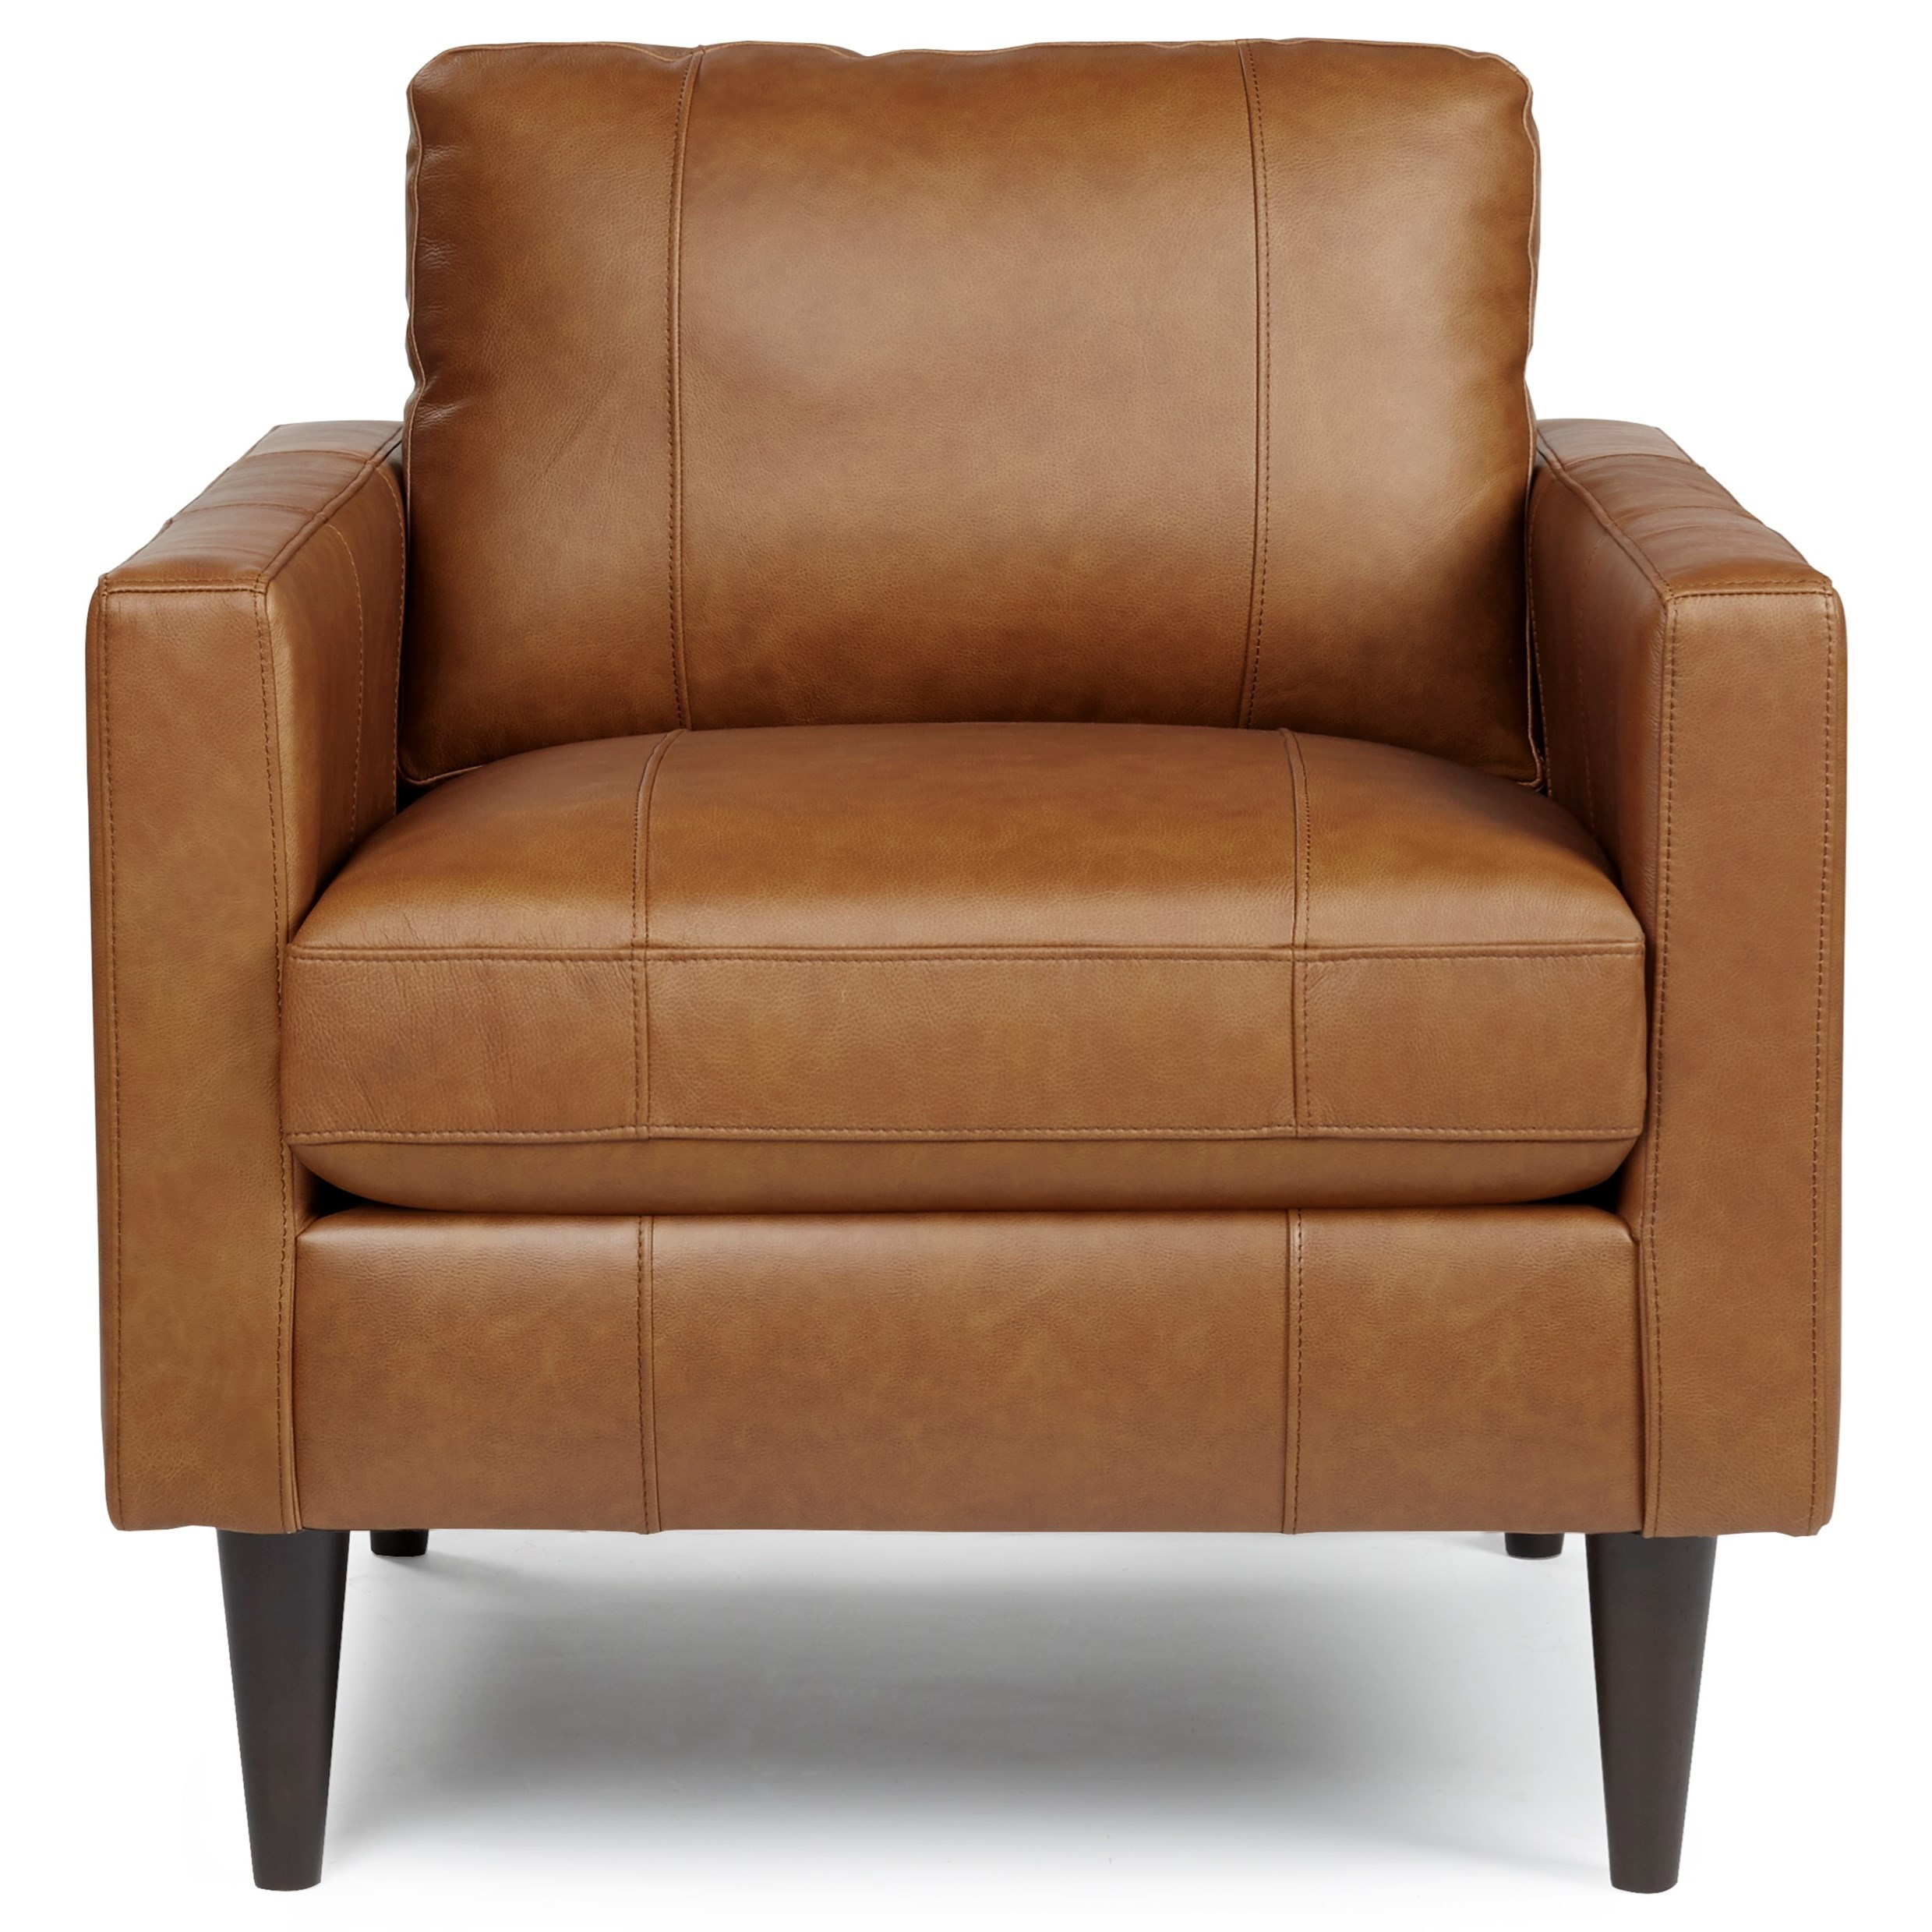 Trafton Chair by Best Home Furnishings at Best Home Furnishings